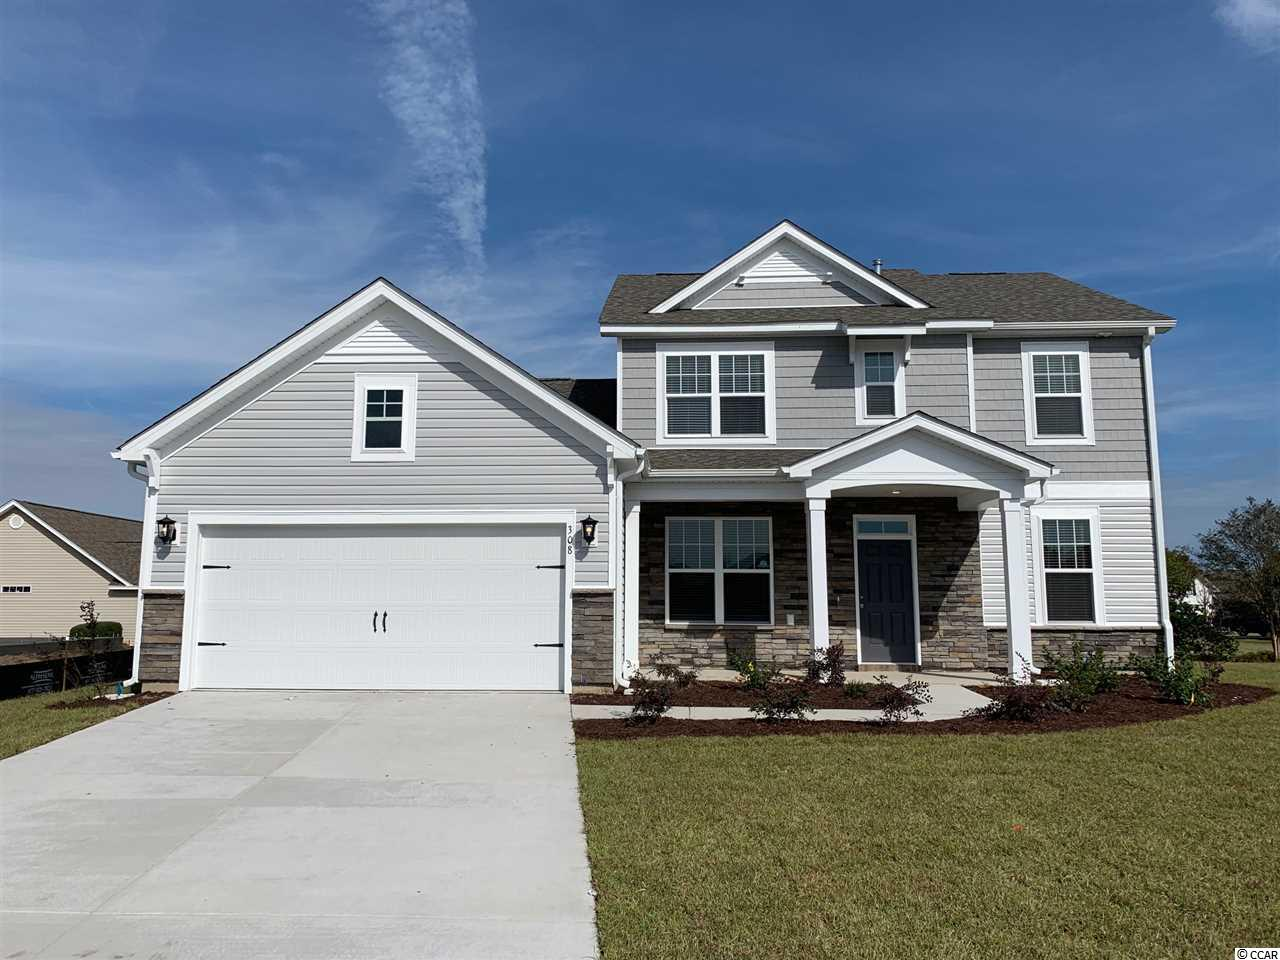 "This lovely Natural Gas ""Millbrook"" home is conveniently located in Belle Mer; the best kept secret on the south-end between Myrtle Beach and Murrells Inlet just off 17-Bypass, across from South Strand Commons, just a bicycle ride to the public beach accesses in Surfside Beach. This ""Millbrook"" boasts upgraded included features, Energy Star Certification for lower utility costs and a more restful home, an open concept floor plan, and a fresh new design. The generous open Kitchen features crisp white Shaker style Kitchen cabinets, a ""Light Gray Glossy""Virtuvian - Subway tile backsplash, granite counter tops, and an Island with 3 Staunton glass pendant lights that also add to the coastal flair. All Stainless Steel Whirlpool Kitchen appliances including Refrigerator, washer dryer, whole house window blinds and gutters included. Master bath features glass enclosed tiled walk-in spa shower with two shower heads. All living areas of this home include easy-maintenance Mohawk REV Wood flooring. All baths and the laundry room include tile flooring. This ""Millbrook"" offers an office/ flex room, 2.5 baths, 3 bedrooms upstairs, and the owner's suite downstairs. The great room ceiling is open to the 2nd floor creating an incredible WOW factor when you enter this spacious, well appointed, easy-living, low maintenance home. The Belle Mer community includes amenities galore: pool, clubhouse,exercise room, sidewalks, and fishing-canoeing lakes. The interior home photos are of a similar decorated Millbrook model home."